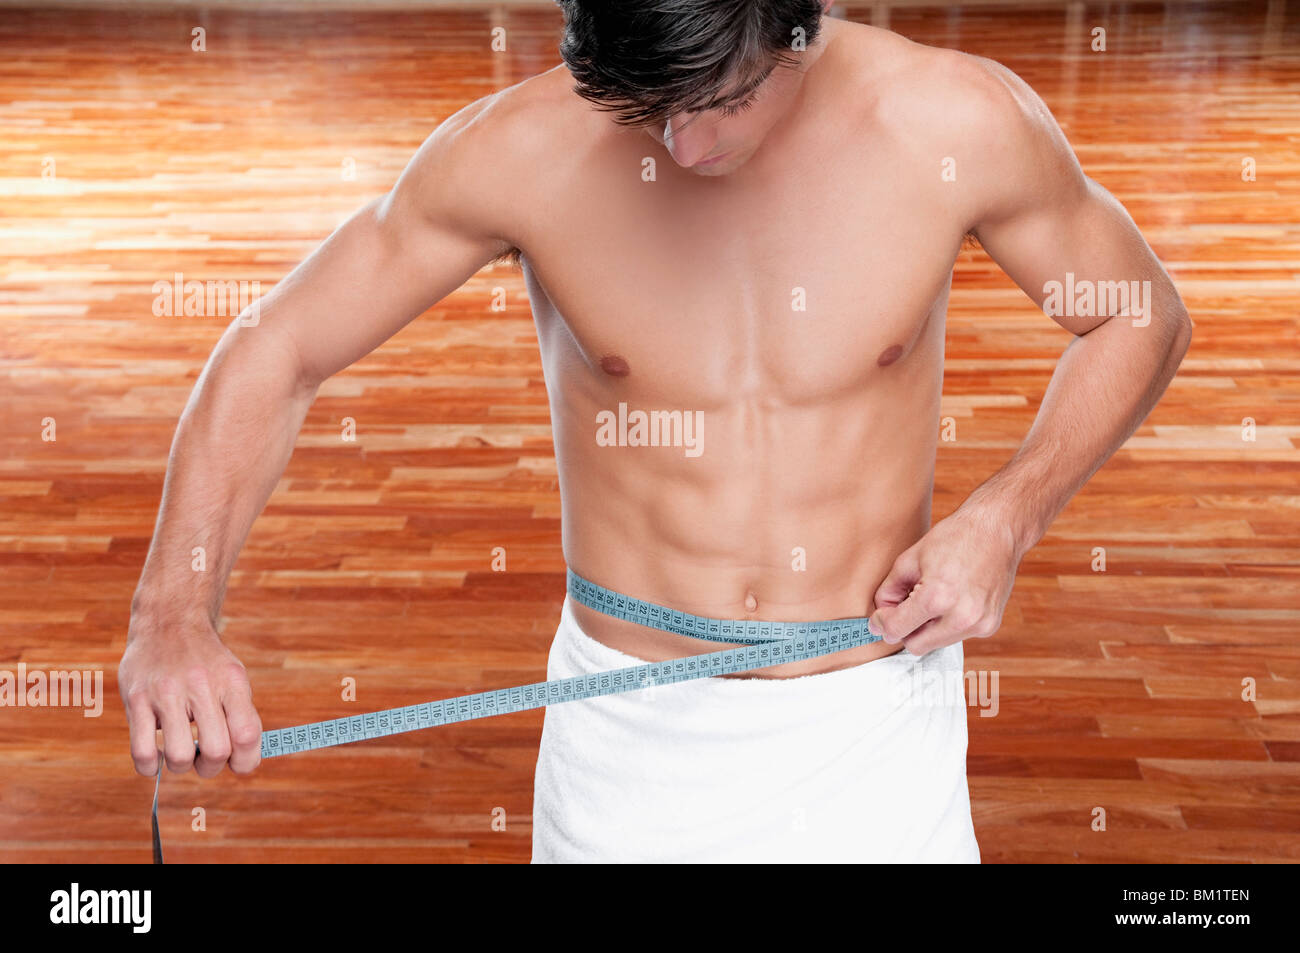 Man measuring his waist with a tape measure Stock Photo